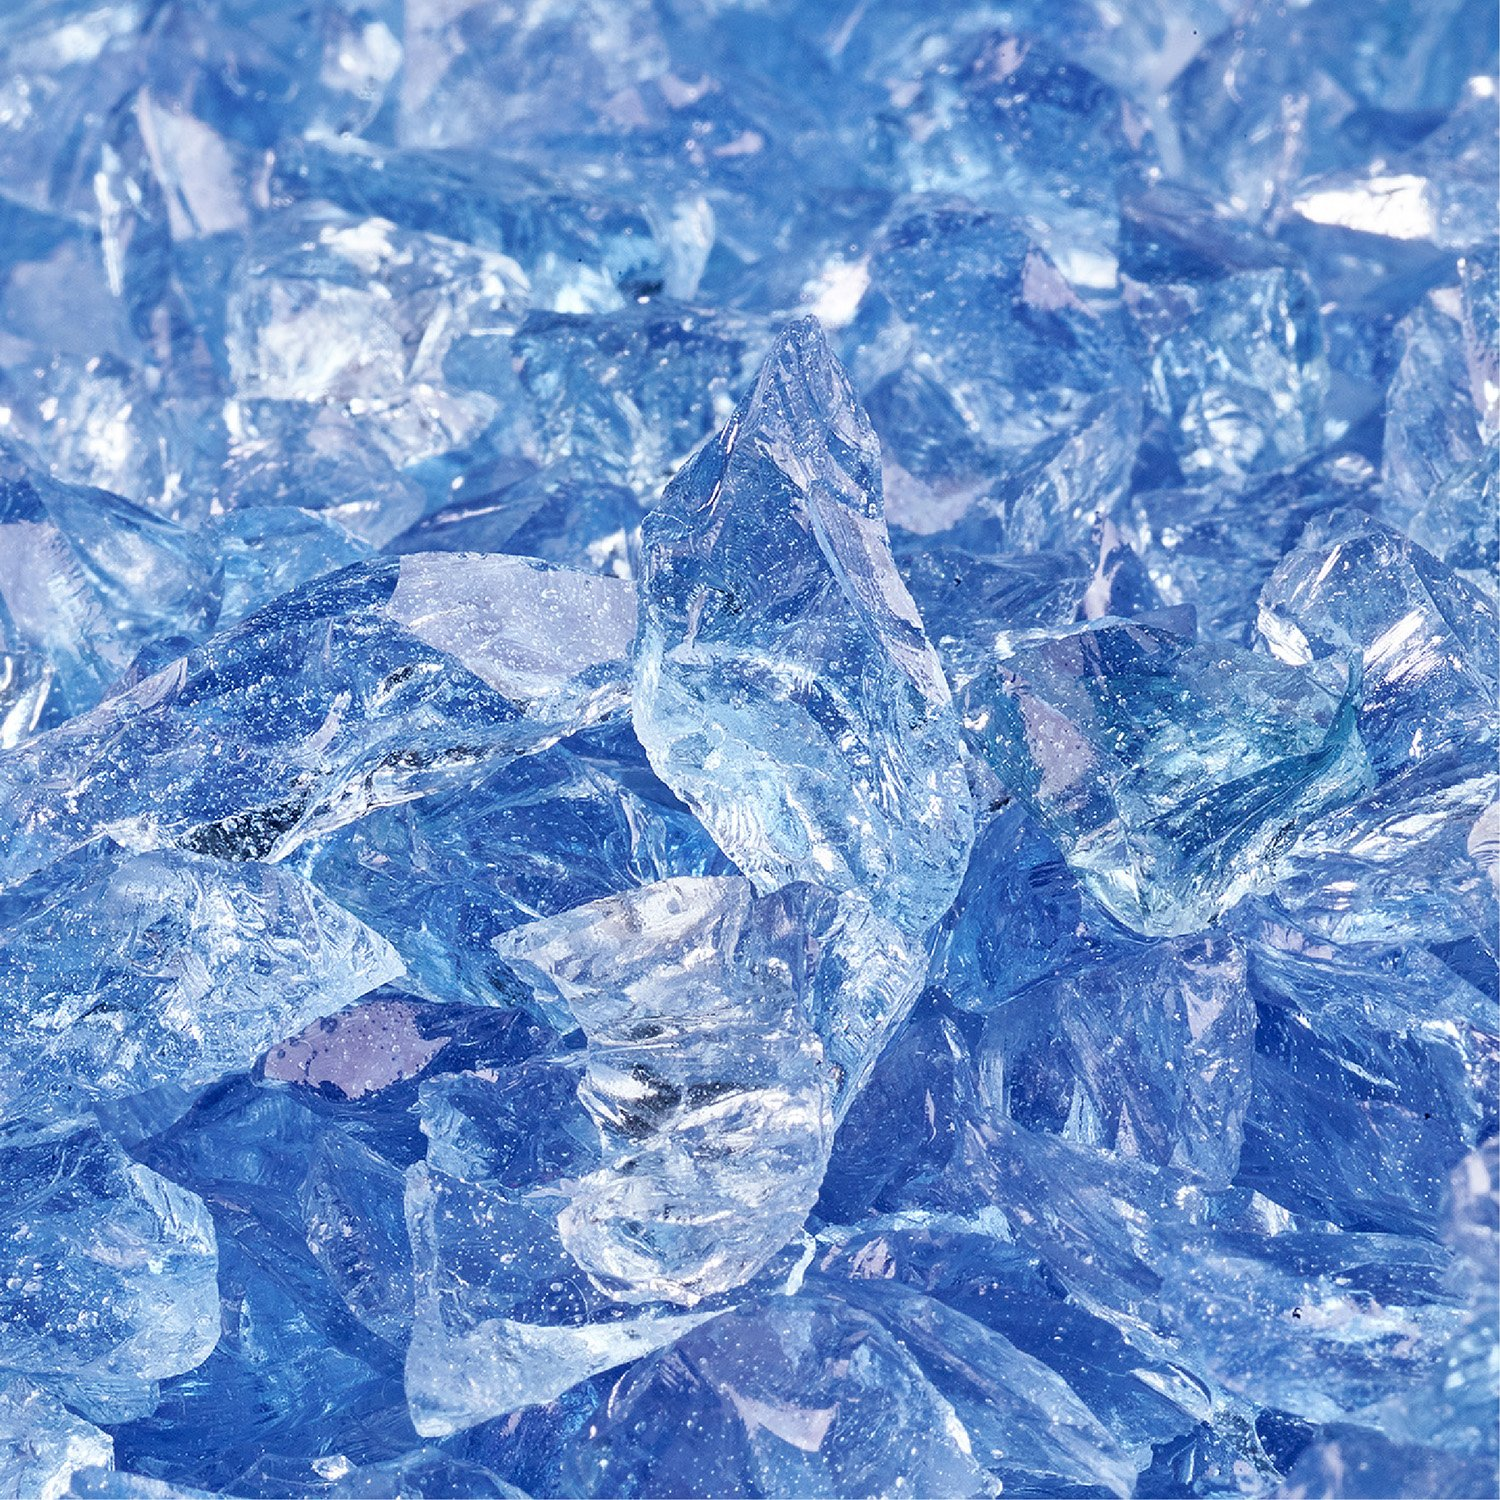 Blue Fire Glass for Indoor and Outdoor Fire Pits or Fireplaces | 10 Pounds | Bermuda Blue Fire Glass Cubes, 1 Inch Fire Pit Essentials